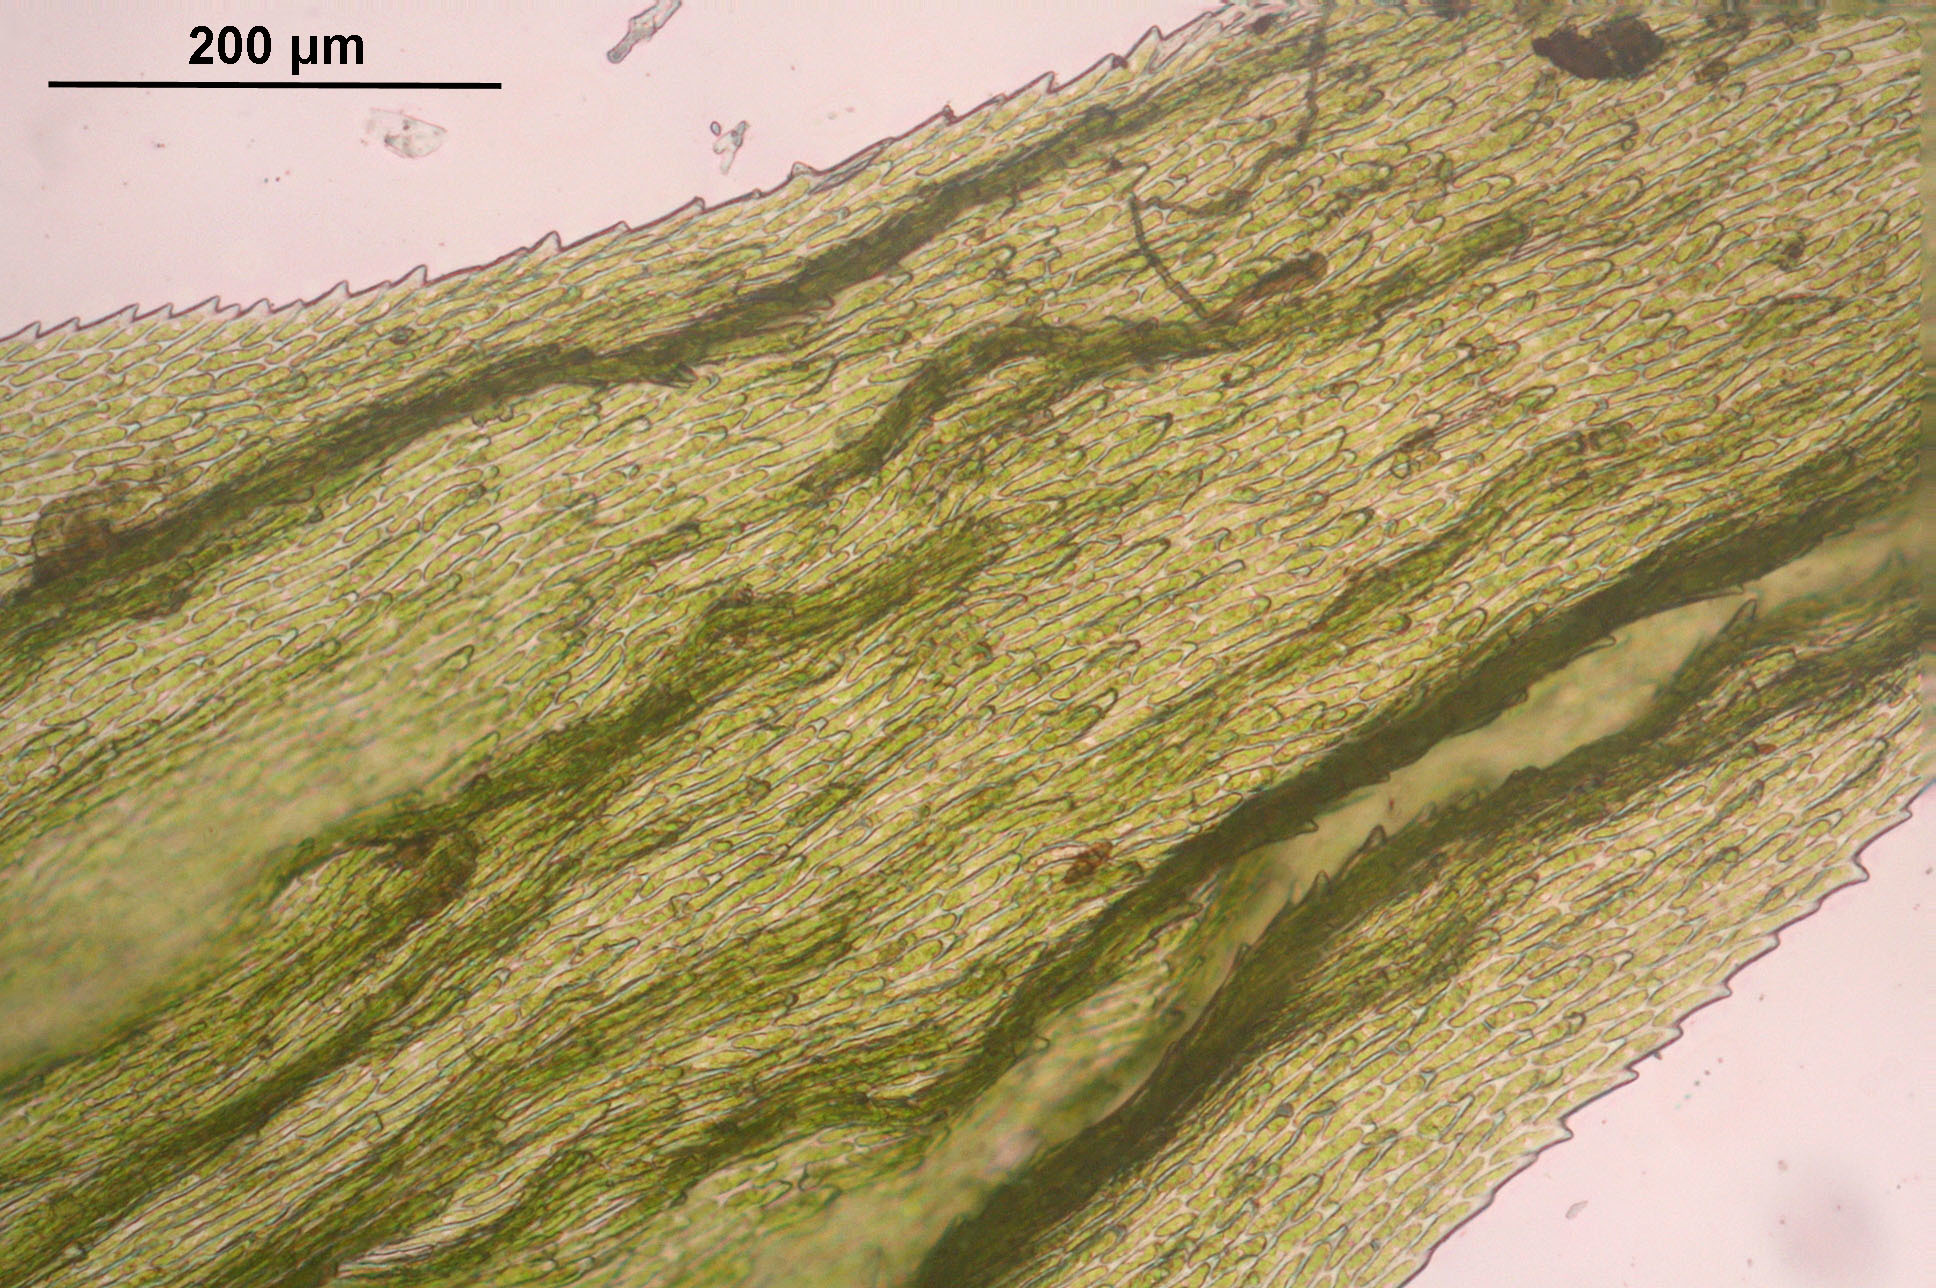 Image of Electrified Cat's Tail Moss